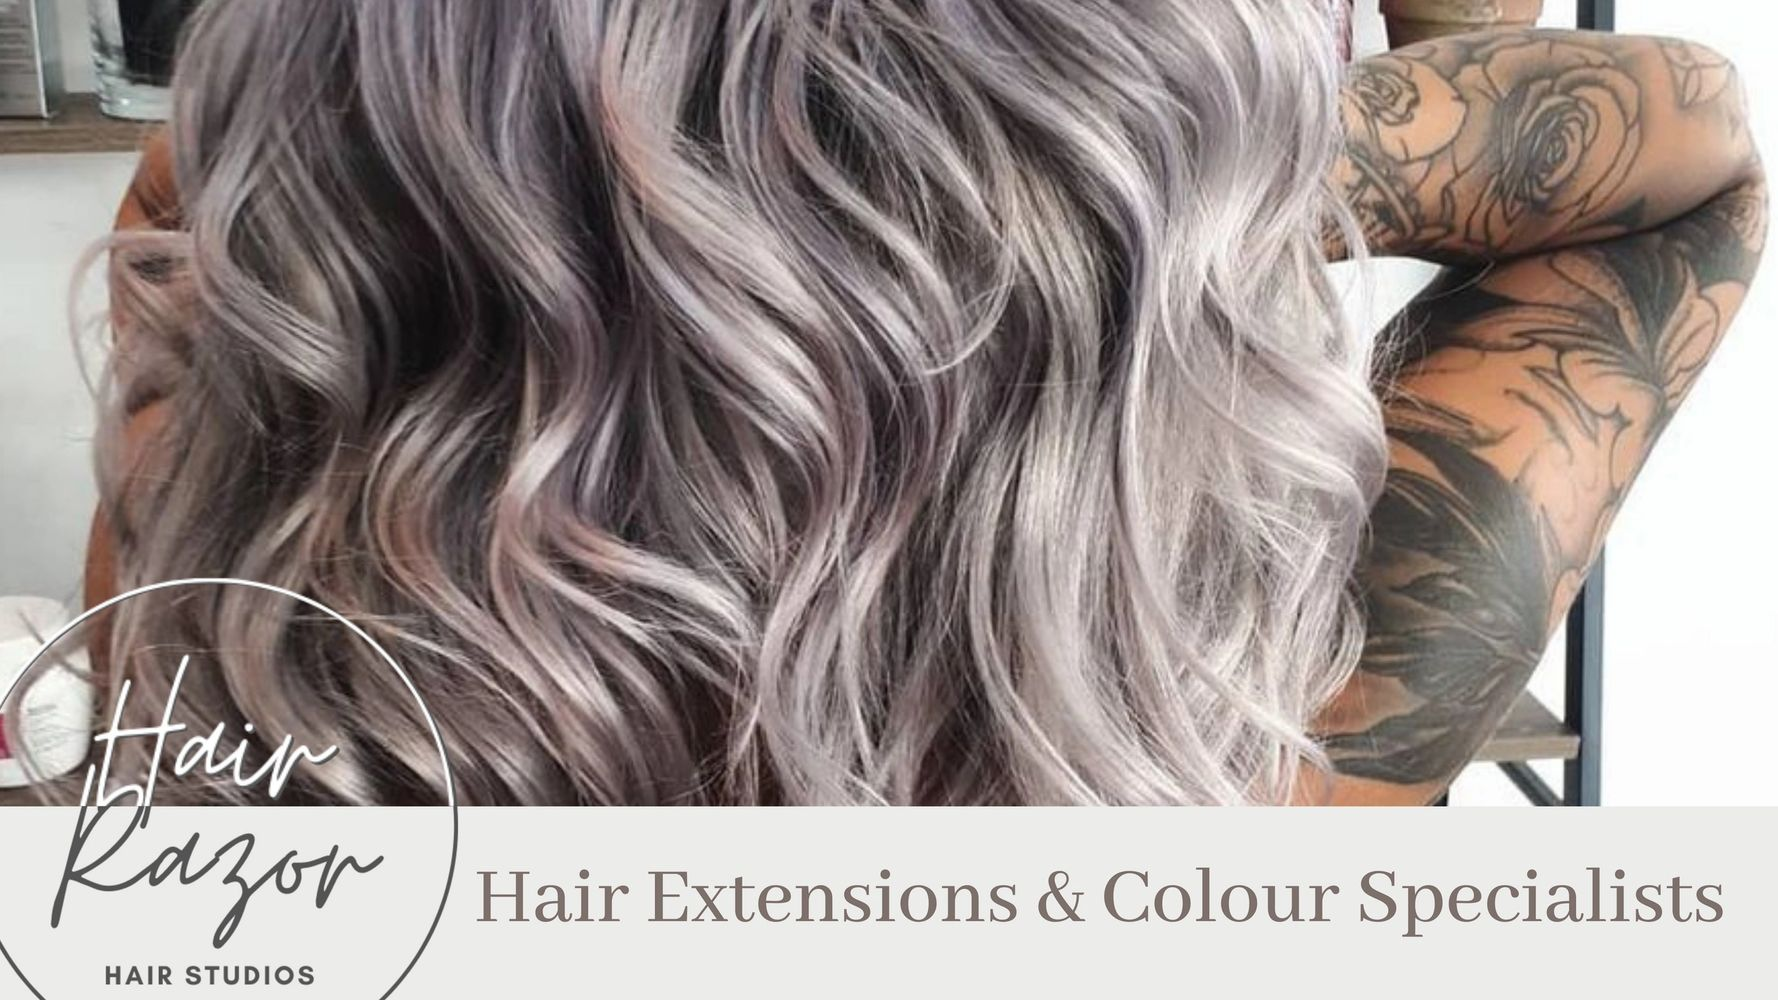 Hair Dressers Frankston, Hair Extensions Frankston, Hair extension specialists Melbourne, Hair Salon